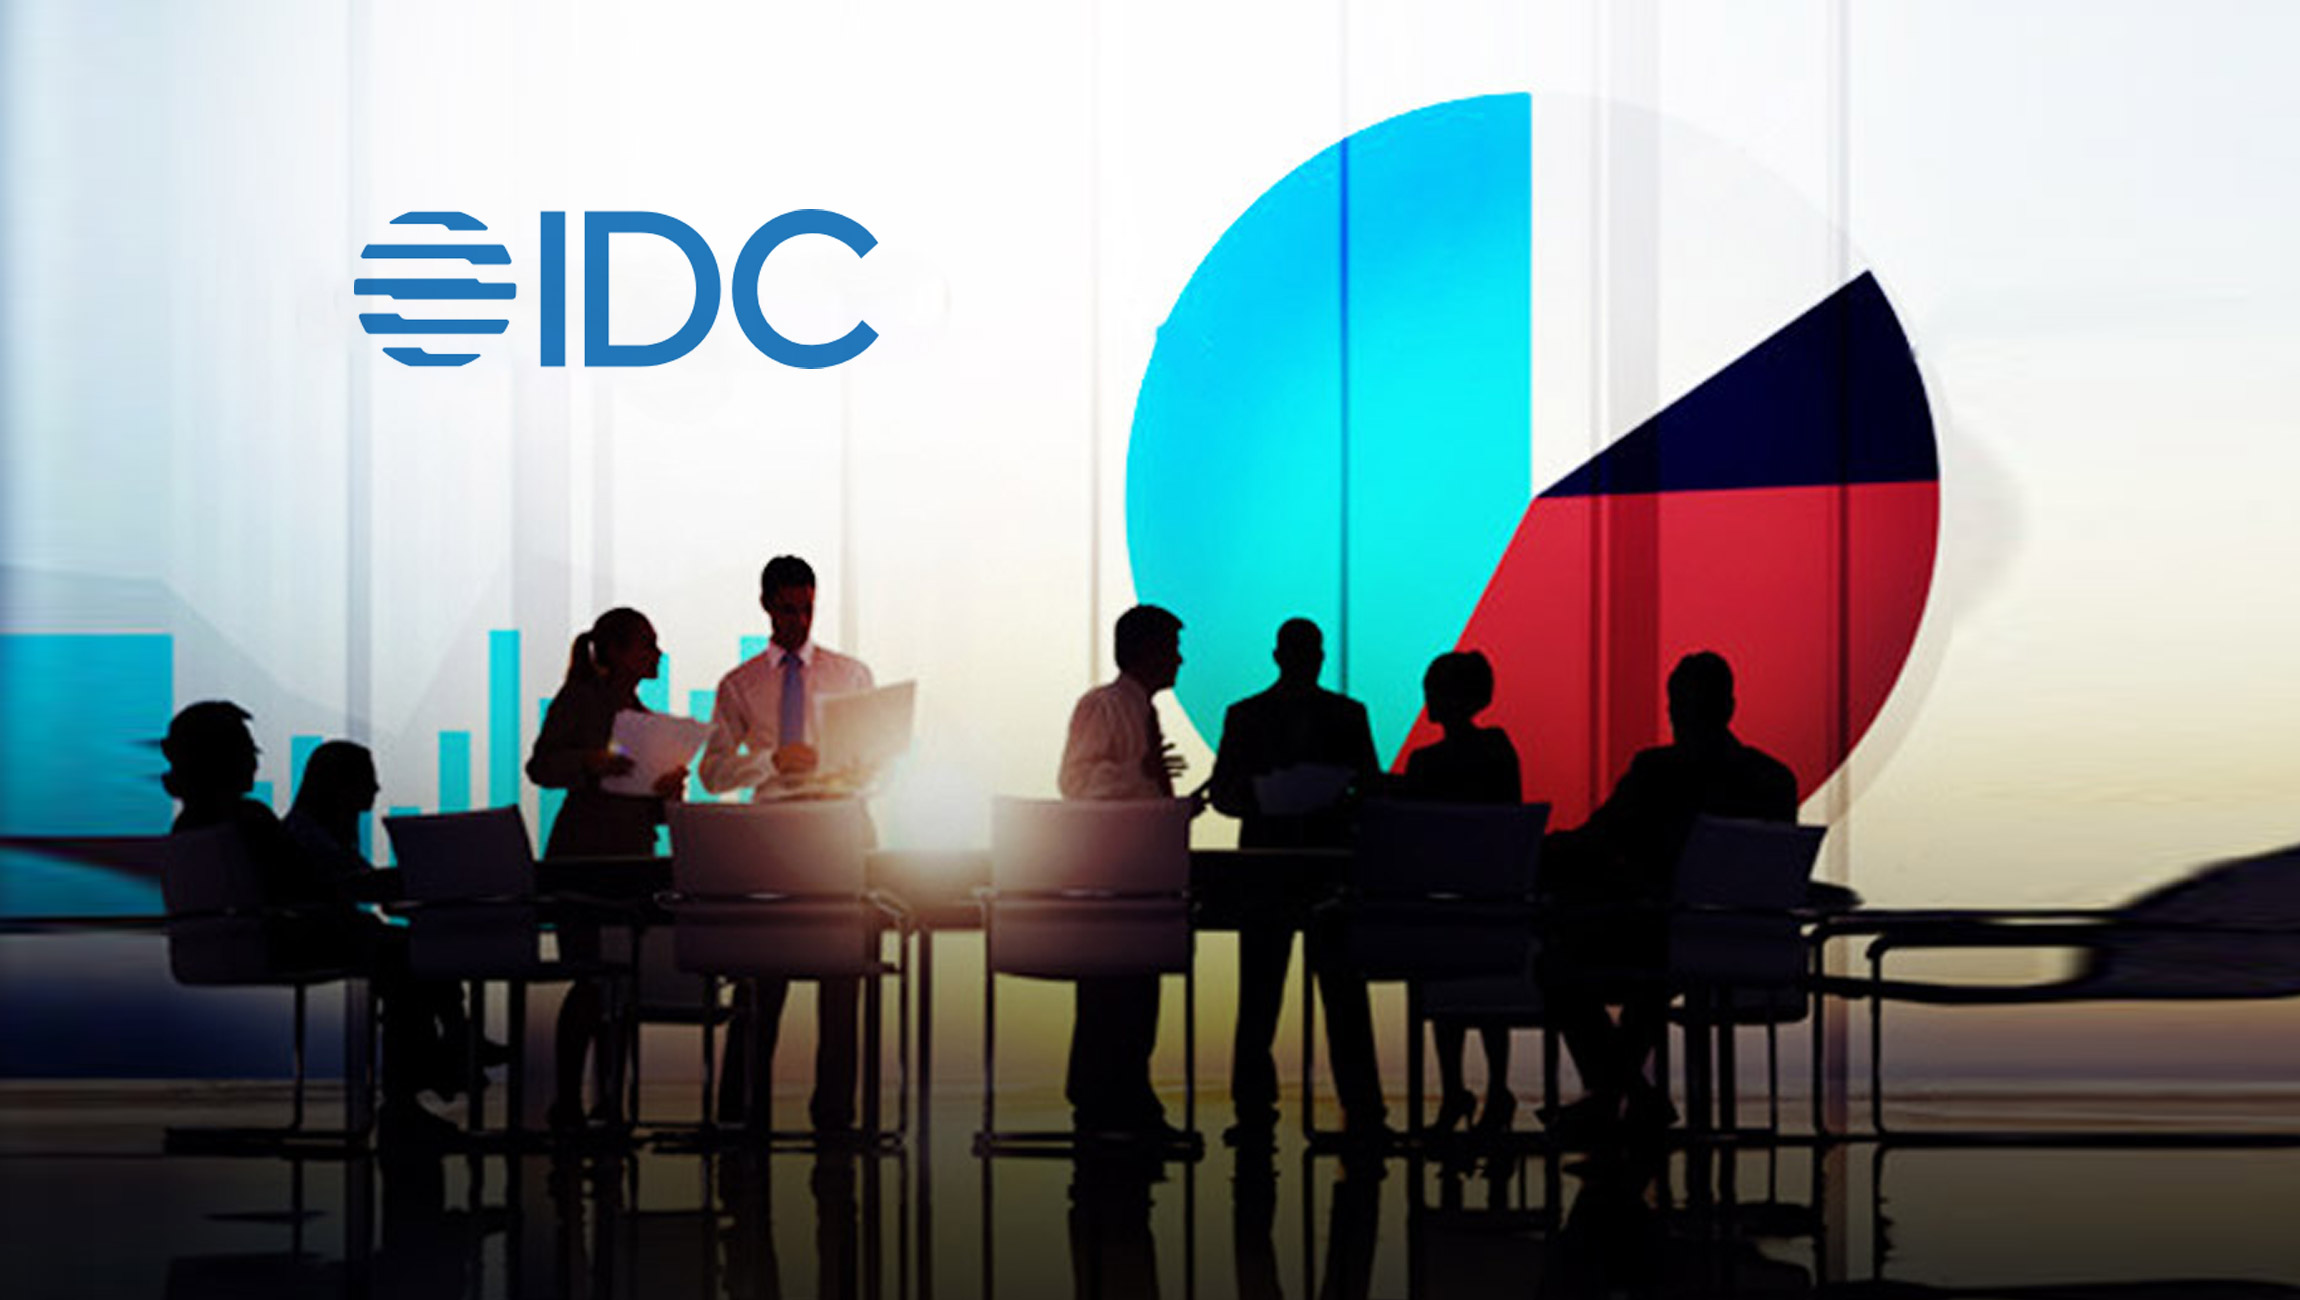 IDC and GTDC Announce Exclusive Partnership to Bring North American Distribution Sales Data to the Tech Industry